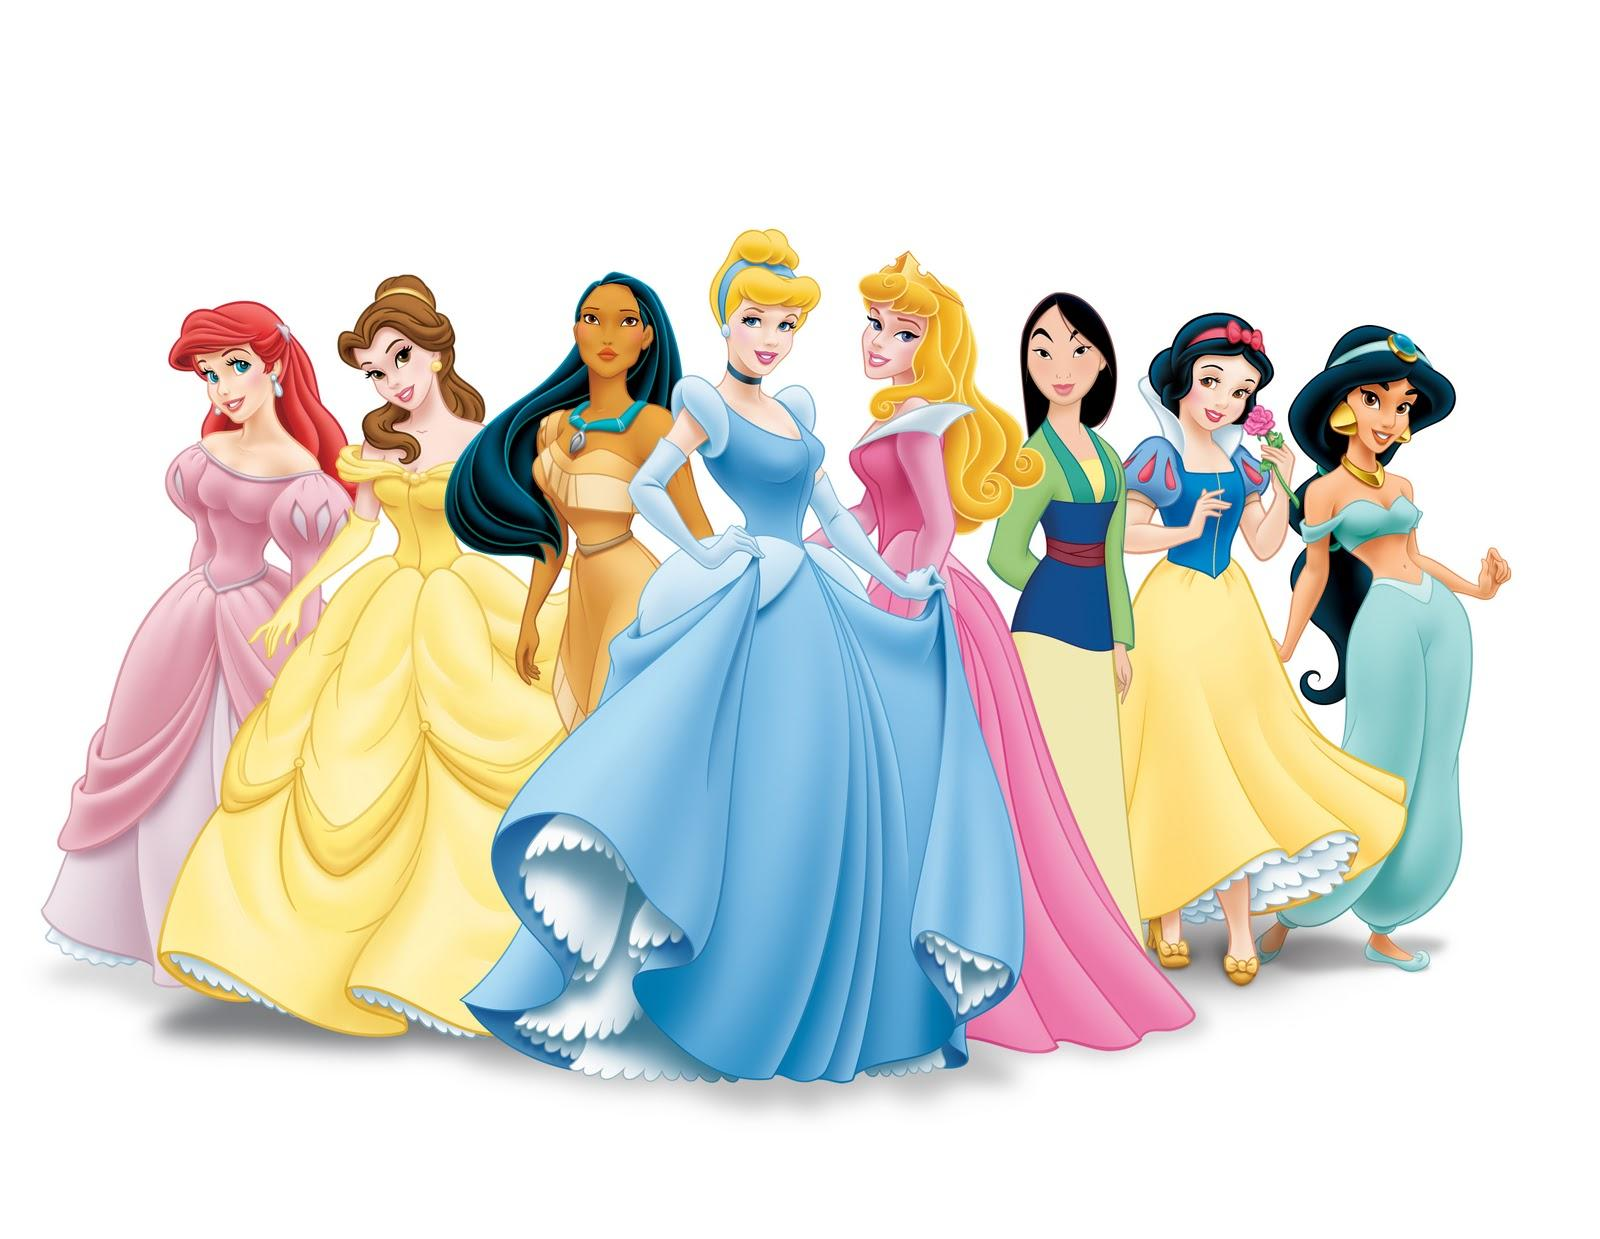 The Disney princesses will,